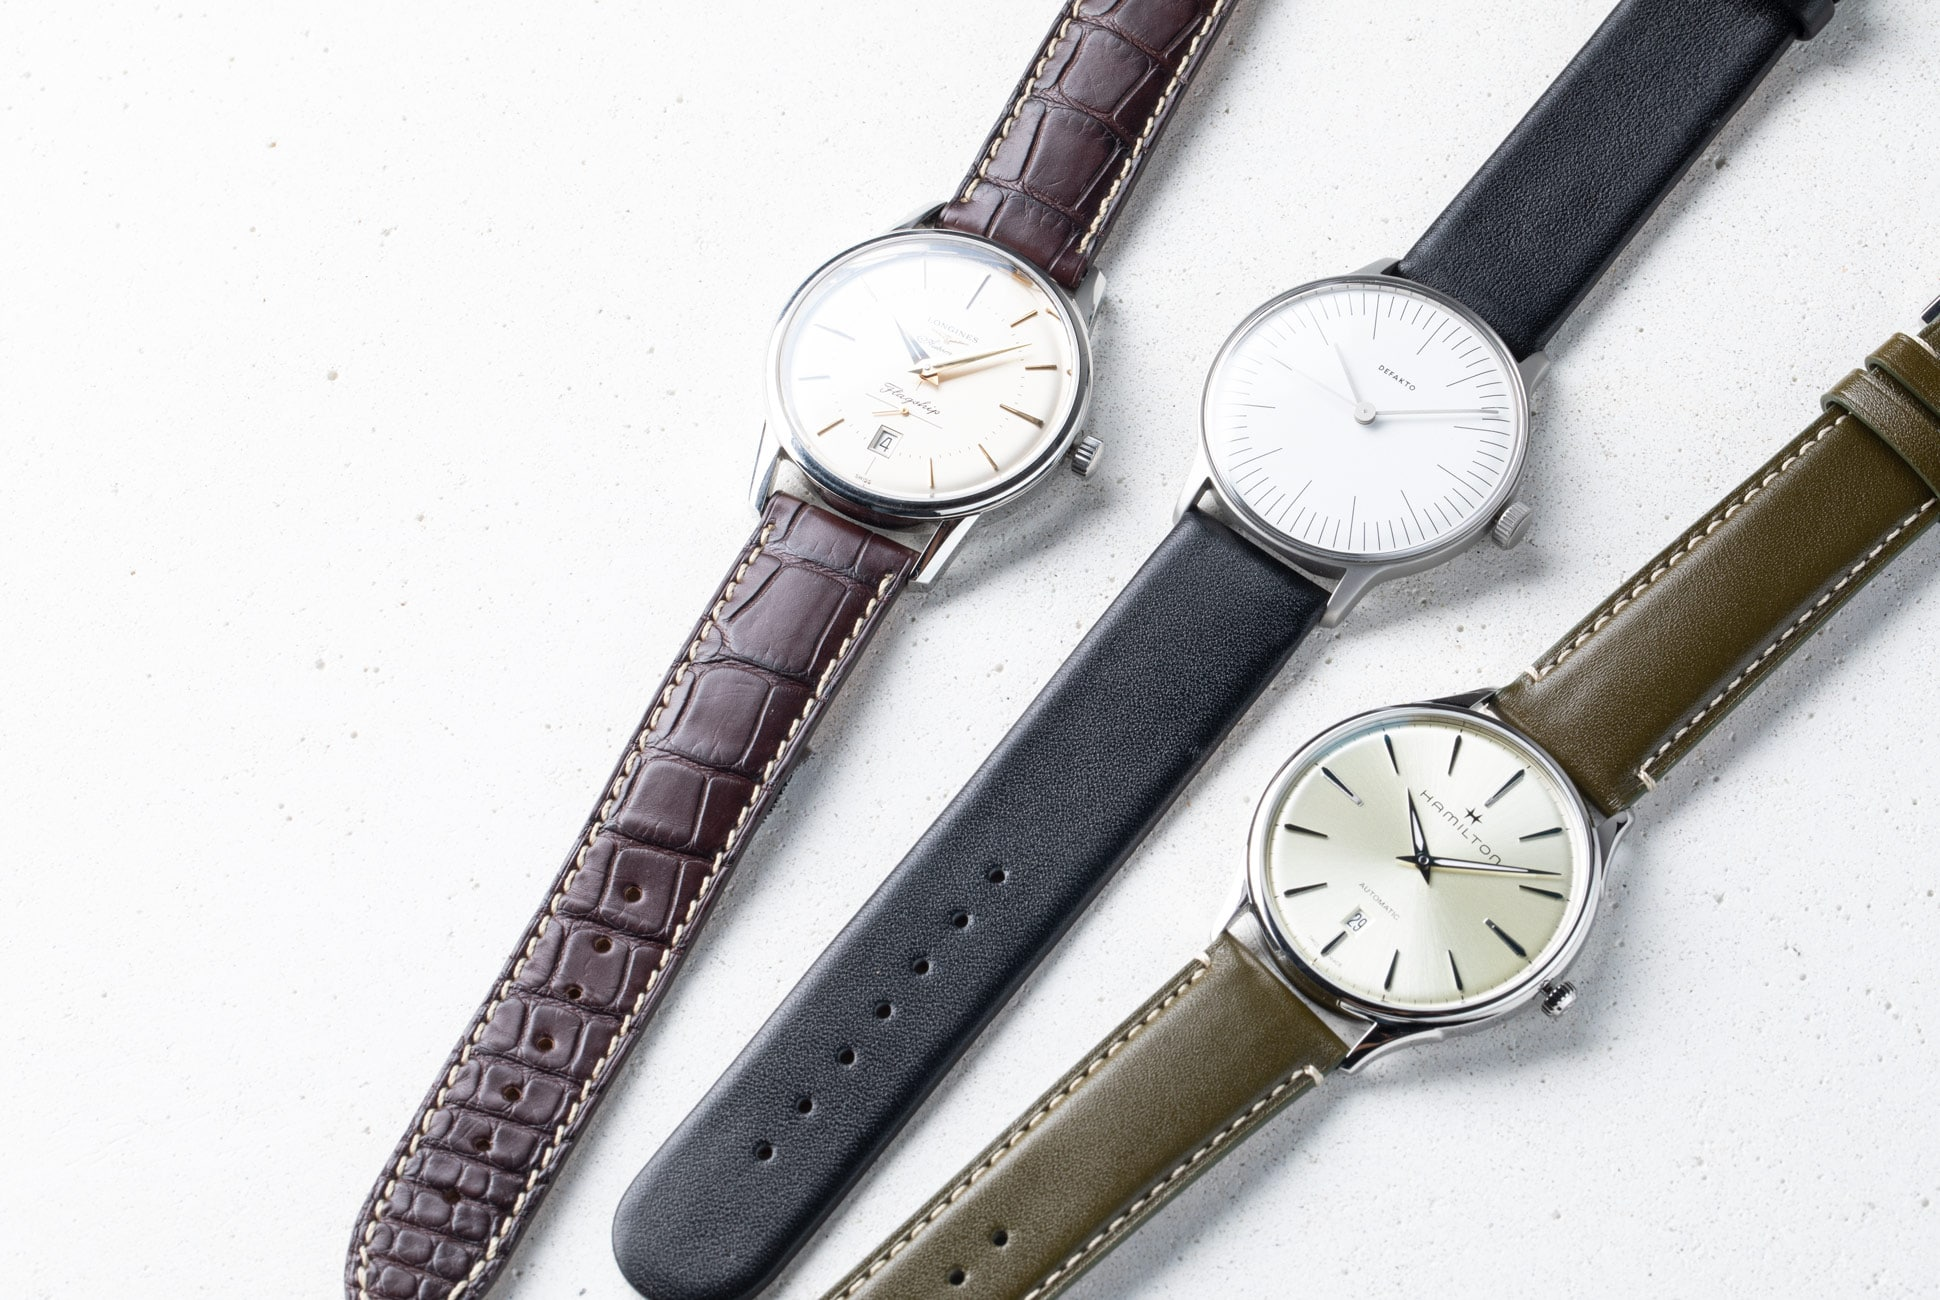 Affordable and stylish: Here are 5 dress watches under RM5,000